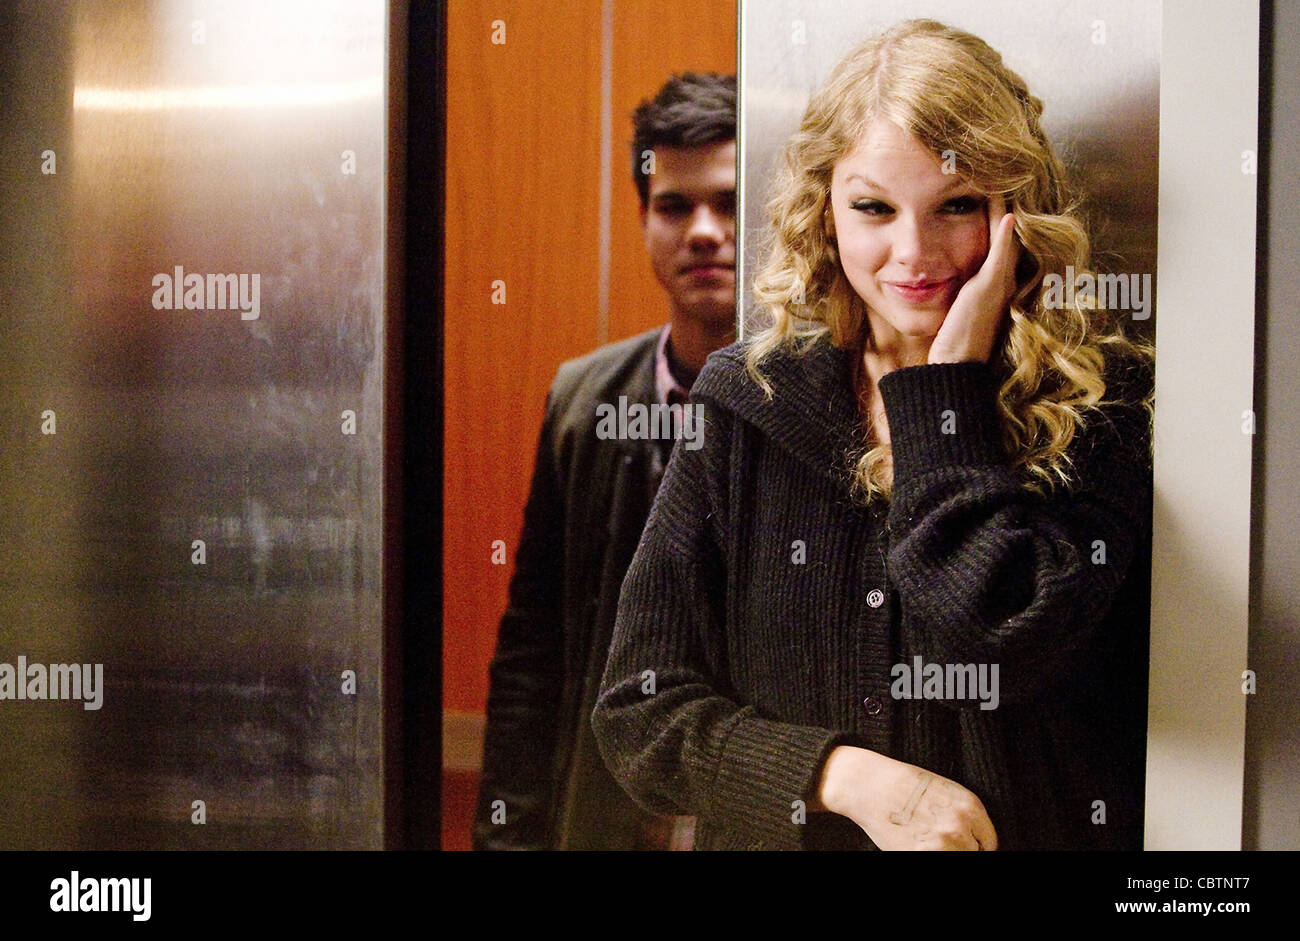 VALENTINES DAY (2010) TAYLOR LAUTNER TAYLOR SWIFT GARRY MARSHALL (DIR) 004 MOVIESTORE COLLECTION LTD - Stock Image